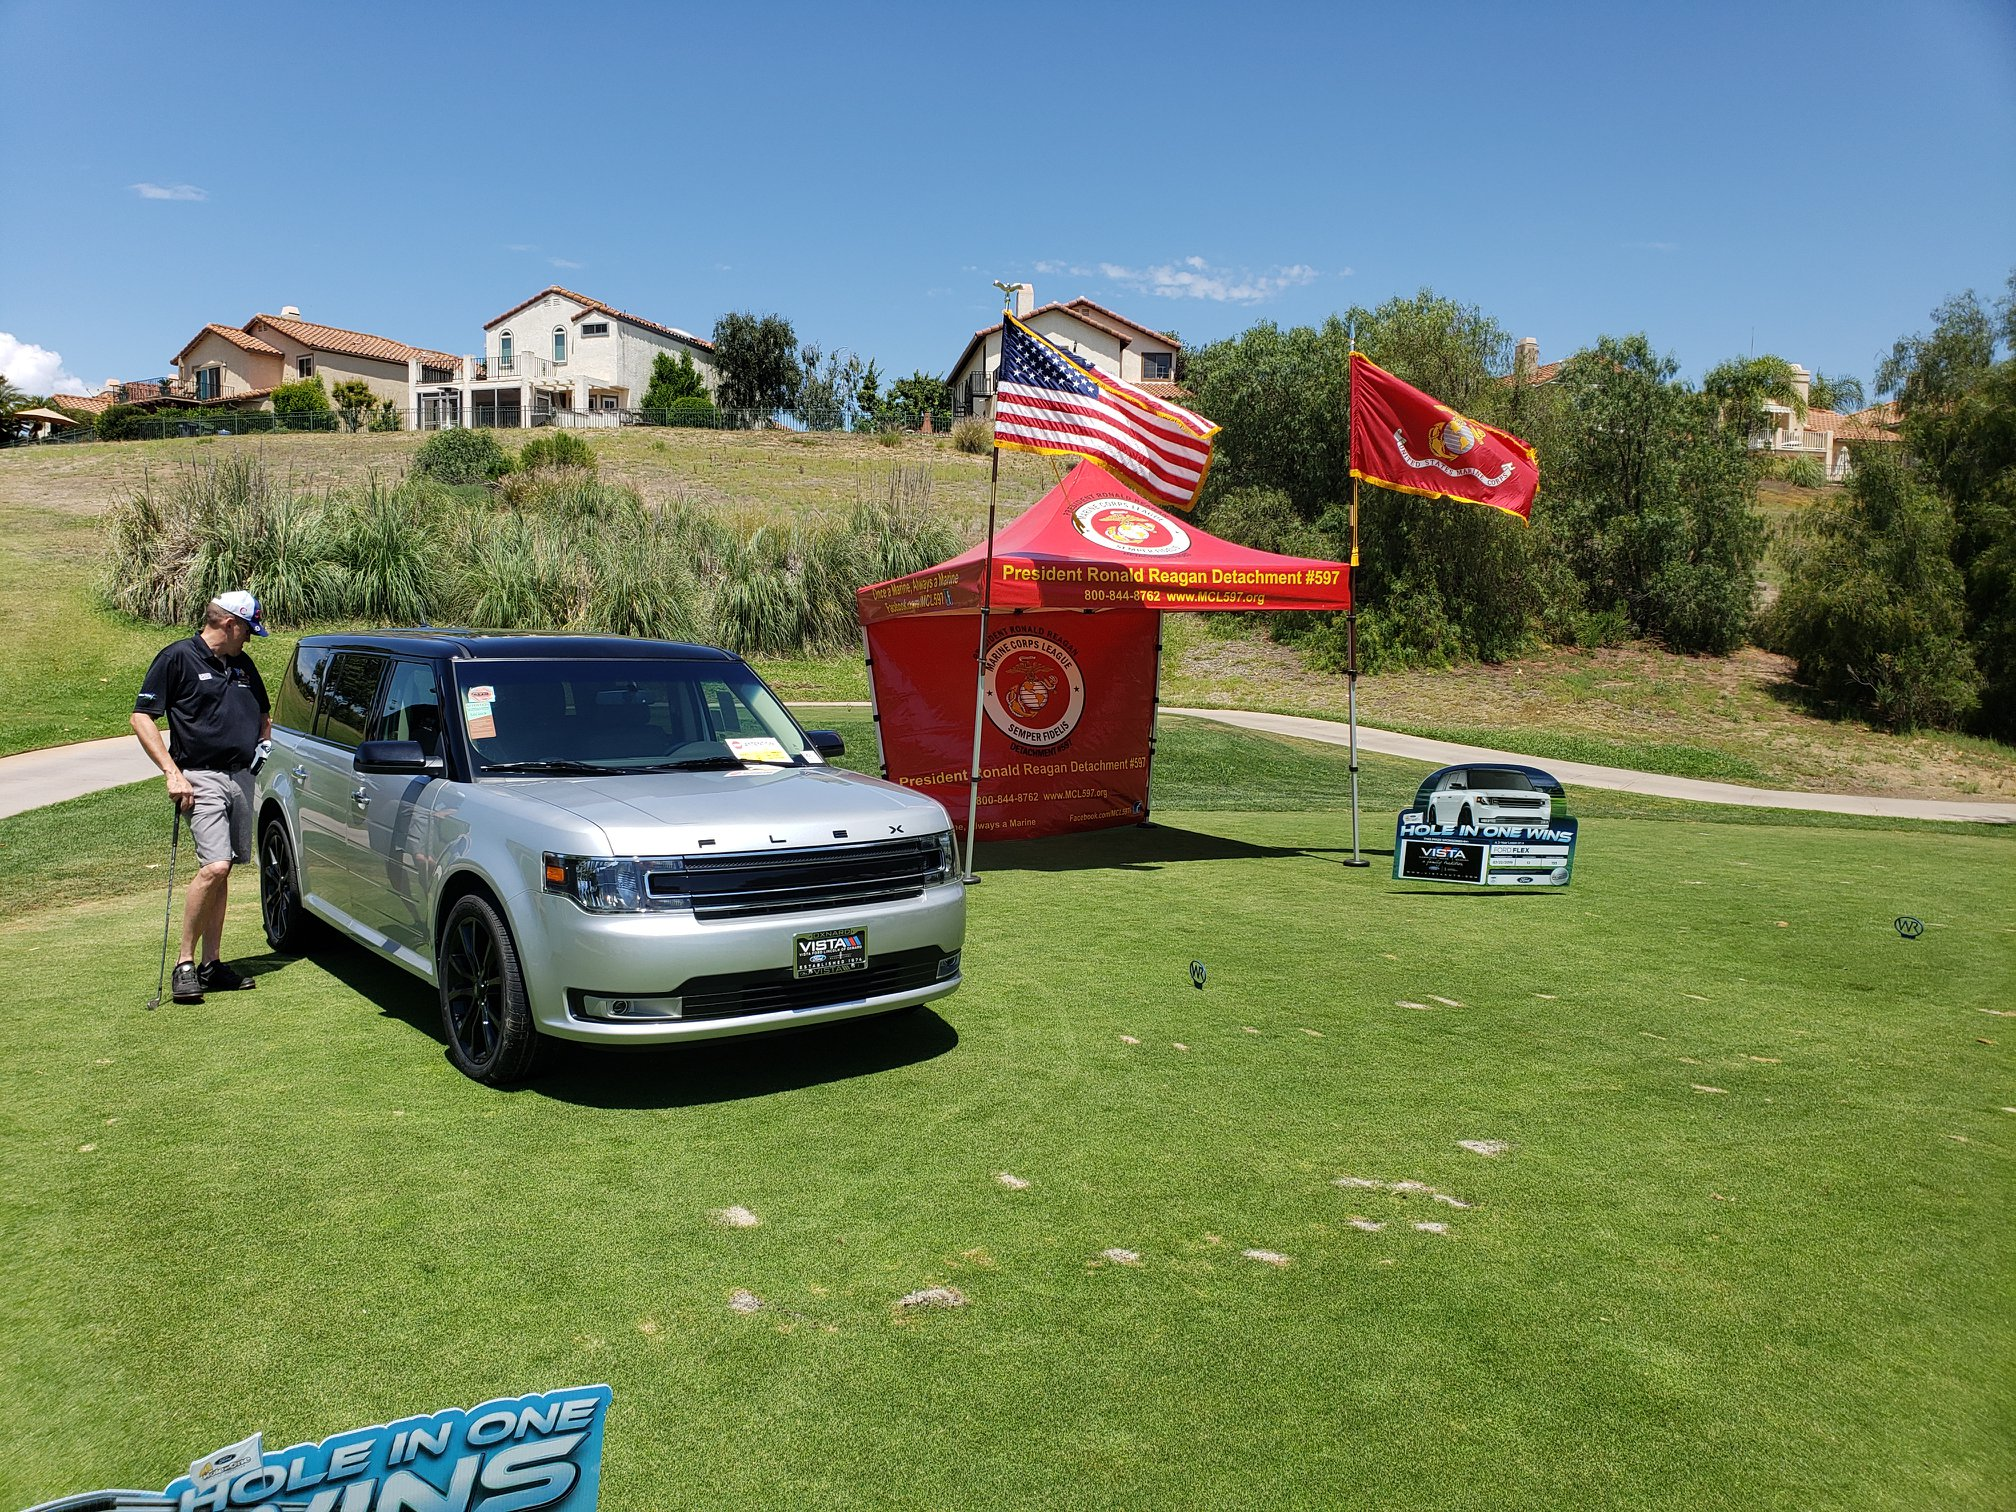 """July 23, 2019   Participated in a terrific Golf Tournament yesterday at the Wood Ranch Country Club, along with John Coley, Jim Wagner and Debbie Sands representing the President Ronald Reagan Det. 597 of the Marine Corps League. It was the 9th Annual Heroes' Golf Tournament sponsored by """"For the Troops."""" This is an organization started by the wife of a Vietnam Veteran and has brought this non-profit company that sends packages to all servicemen/women that are fighting outside the US to be one of the number one charities in the country. It's a terrific charity and Detachment 597 has designated """"For the Troops"""" to be one of their preferential charities.    The photo is our pop-up """"Big Red"""" on the 13th tee, Hole-in-One hole to win that SUV. No one won. I want to thank Paula Cornell for everything she has done for all our active military personnel and Detachment 597."""